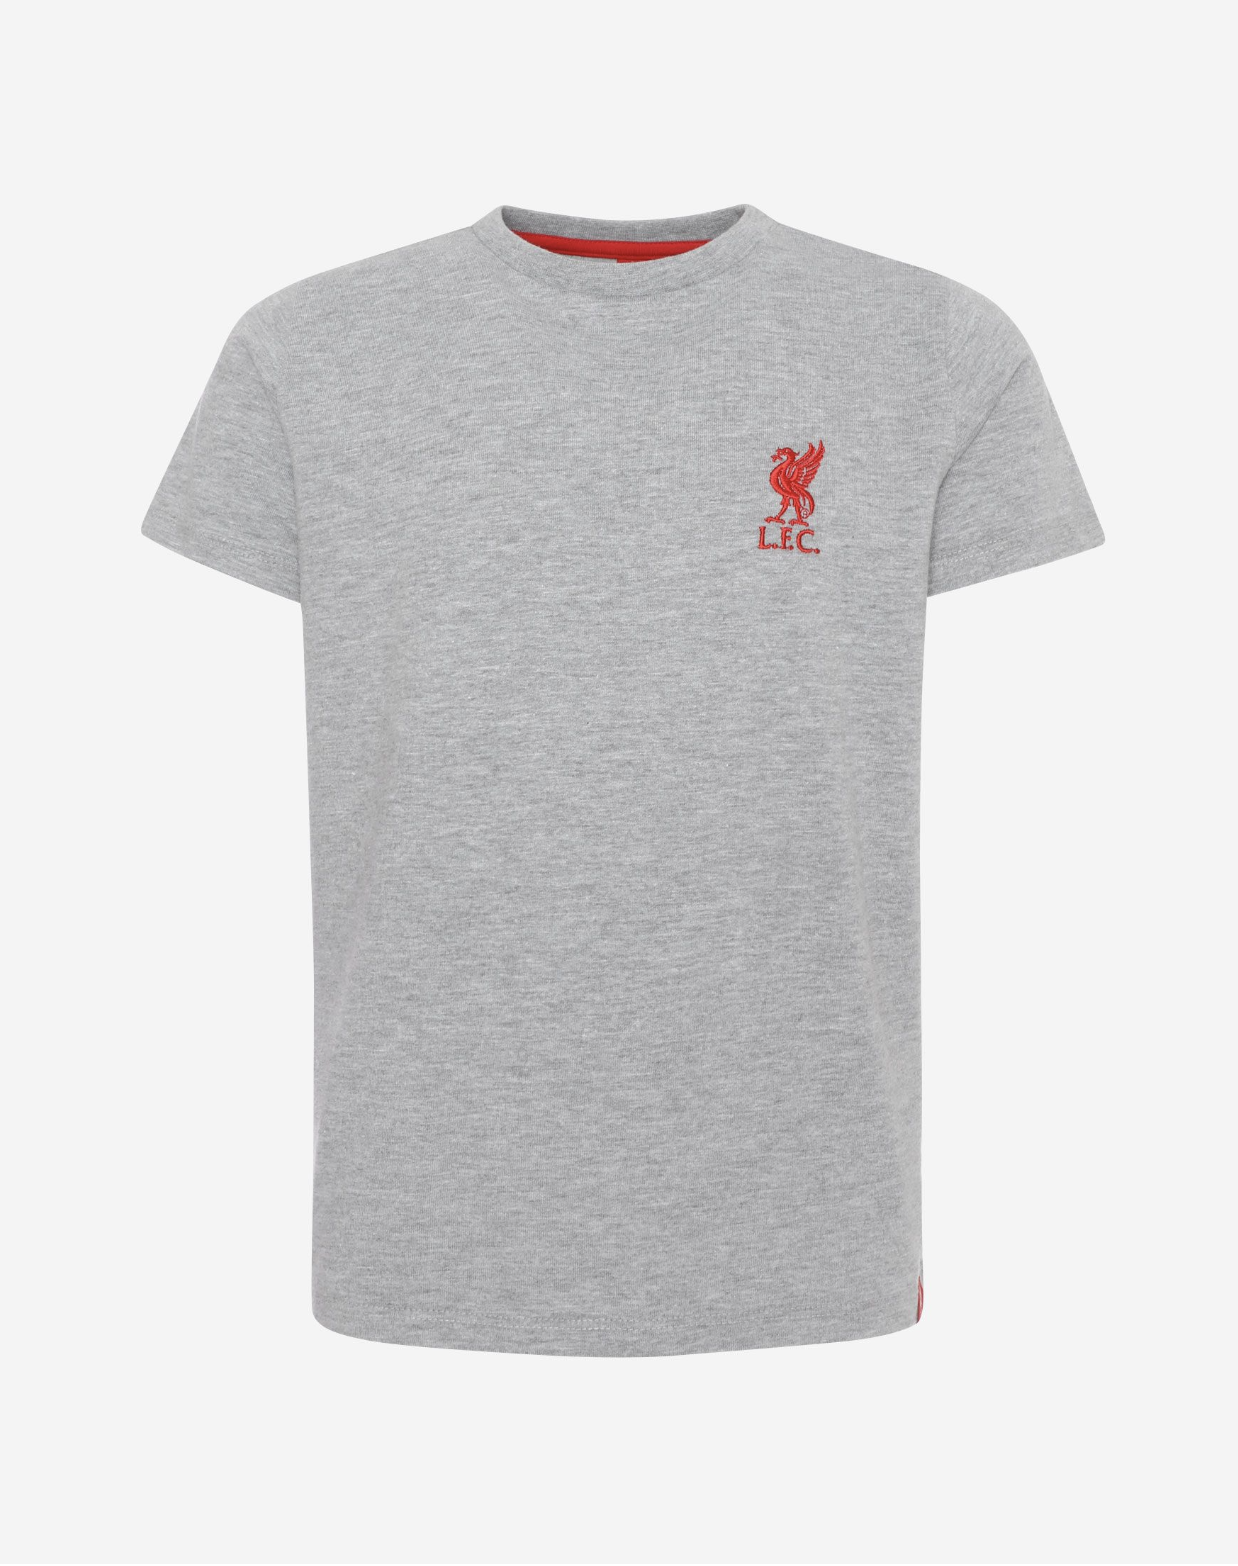 Liverpool FC YOUTH Emblem Tee